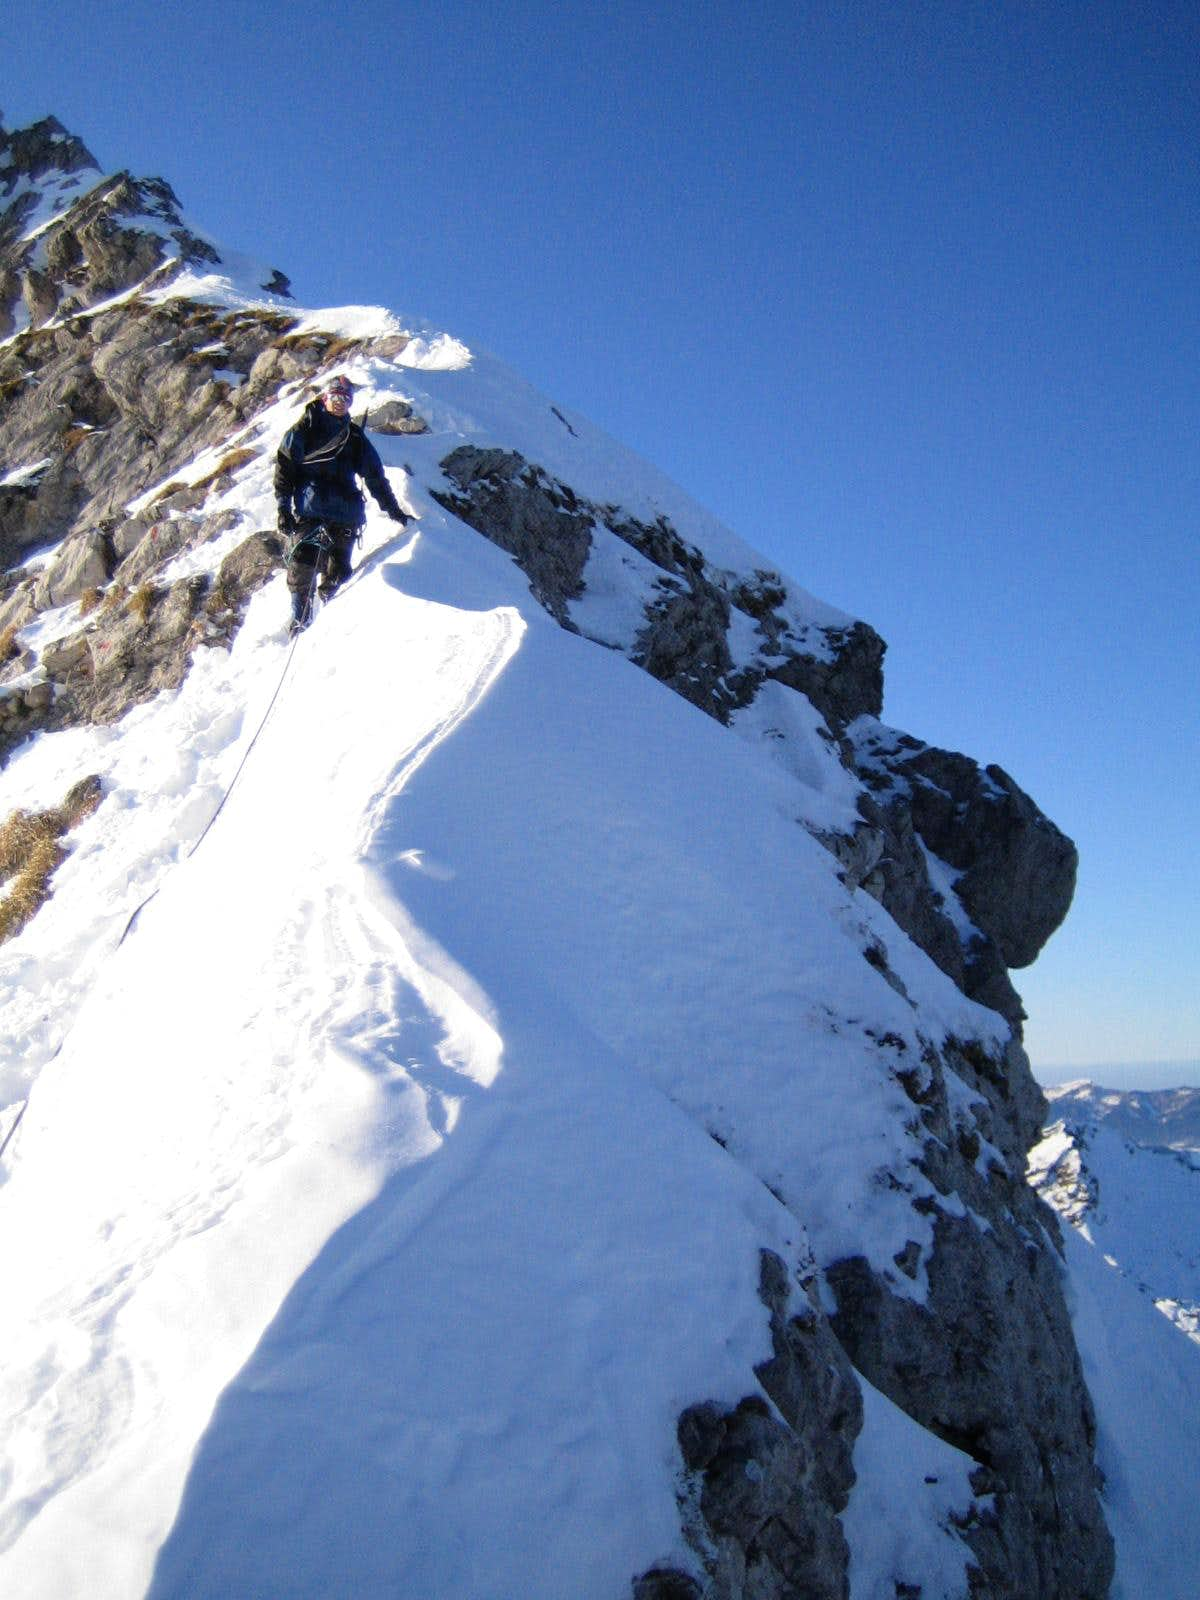 Winter climb of the Via Ferrata Hindelang / Hindelanger Klettersteig